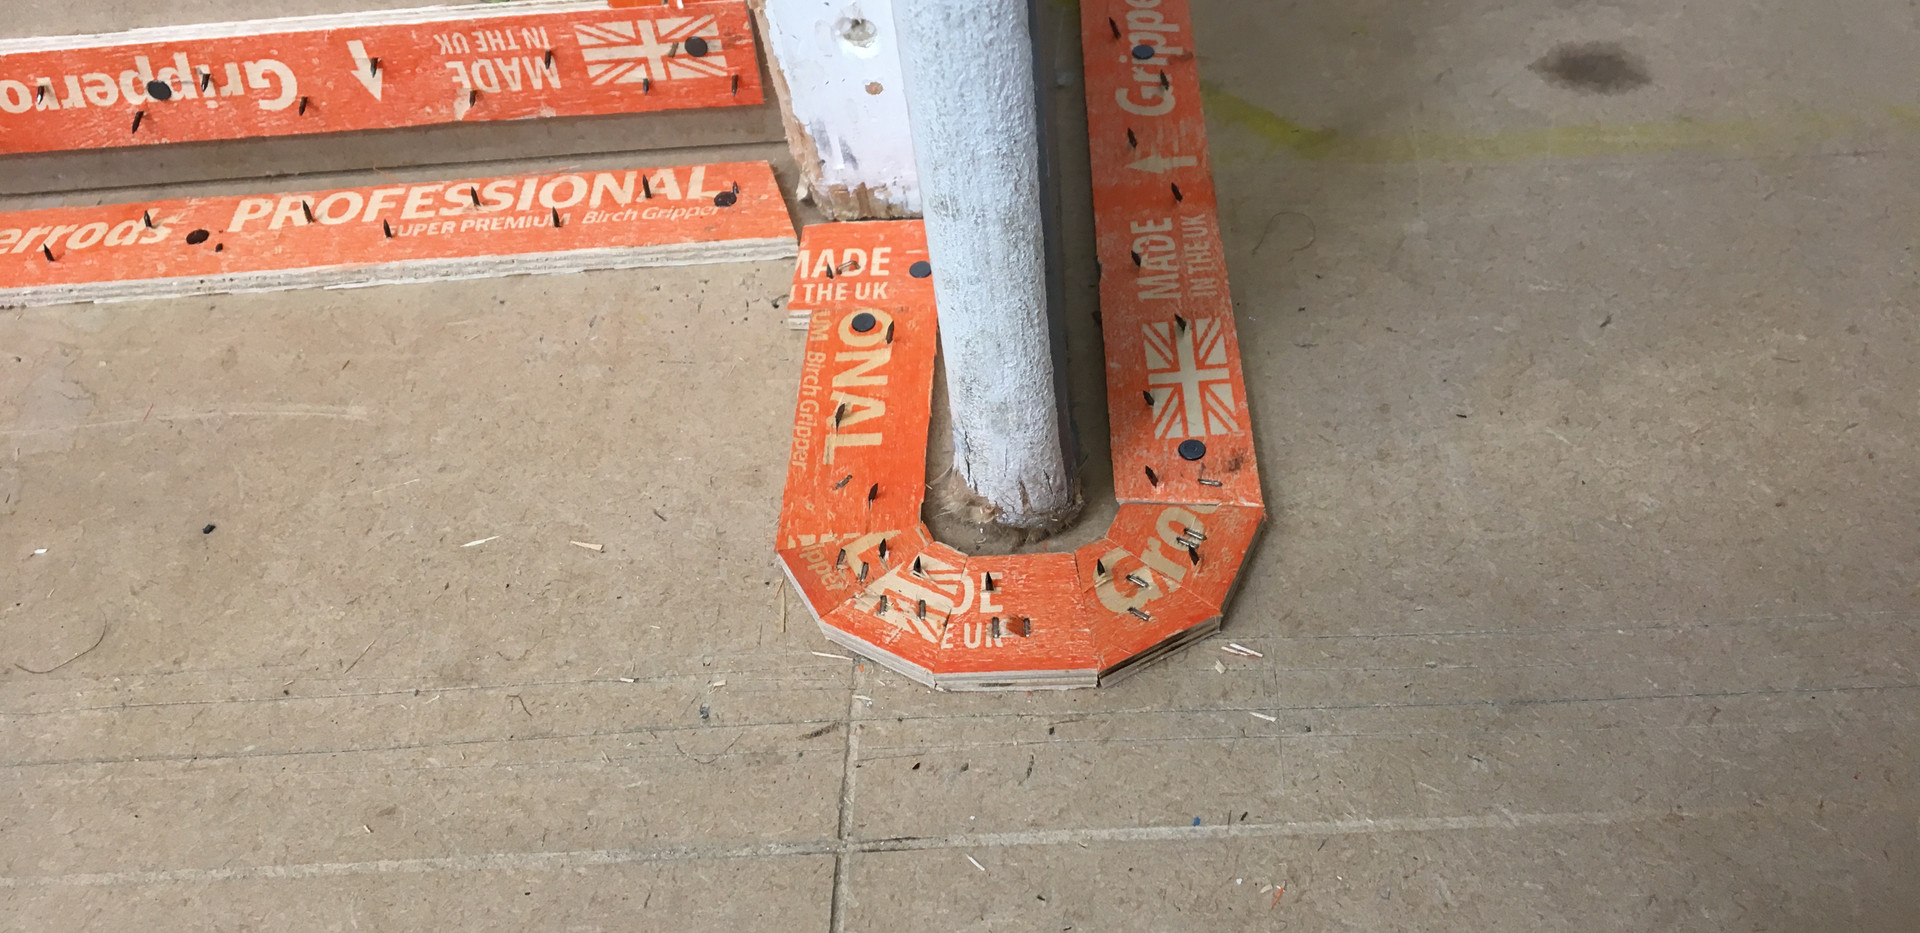 Grippers installed in accordance to British Standards